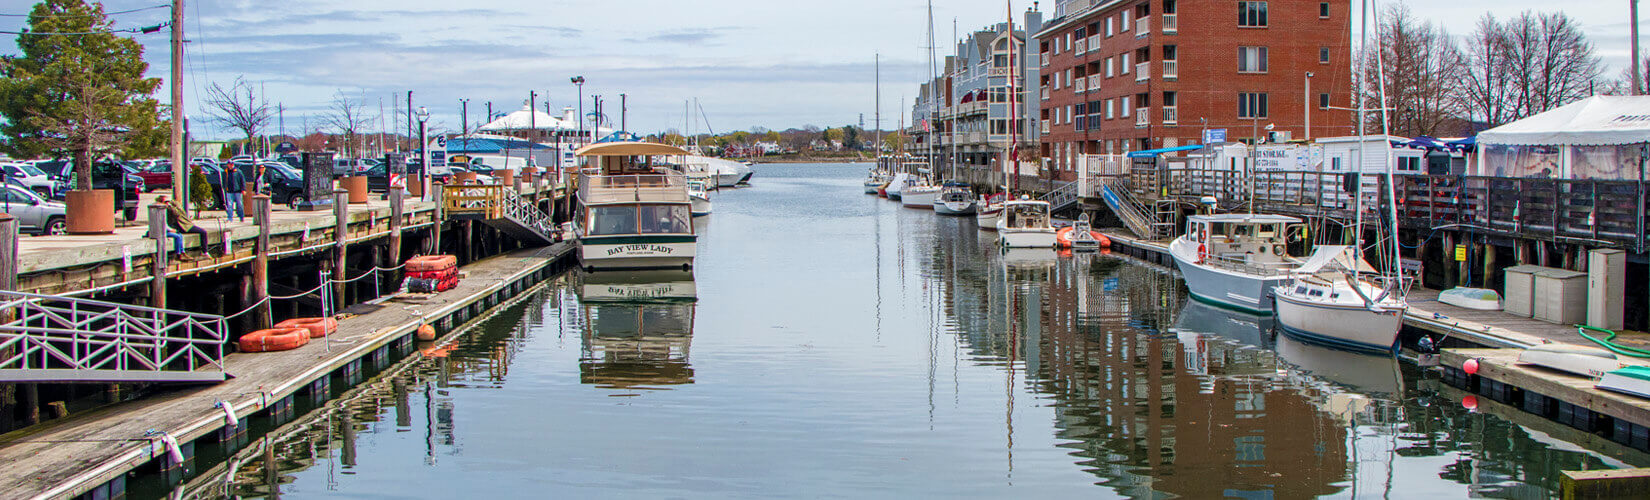 Tips & Tricks For Your First Time in Portland Maine :: I've Been Bit! Travel Blog